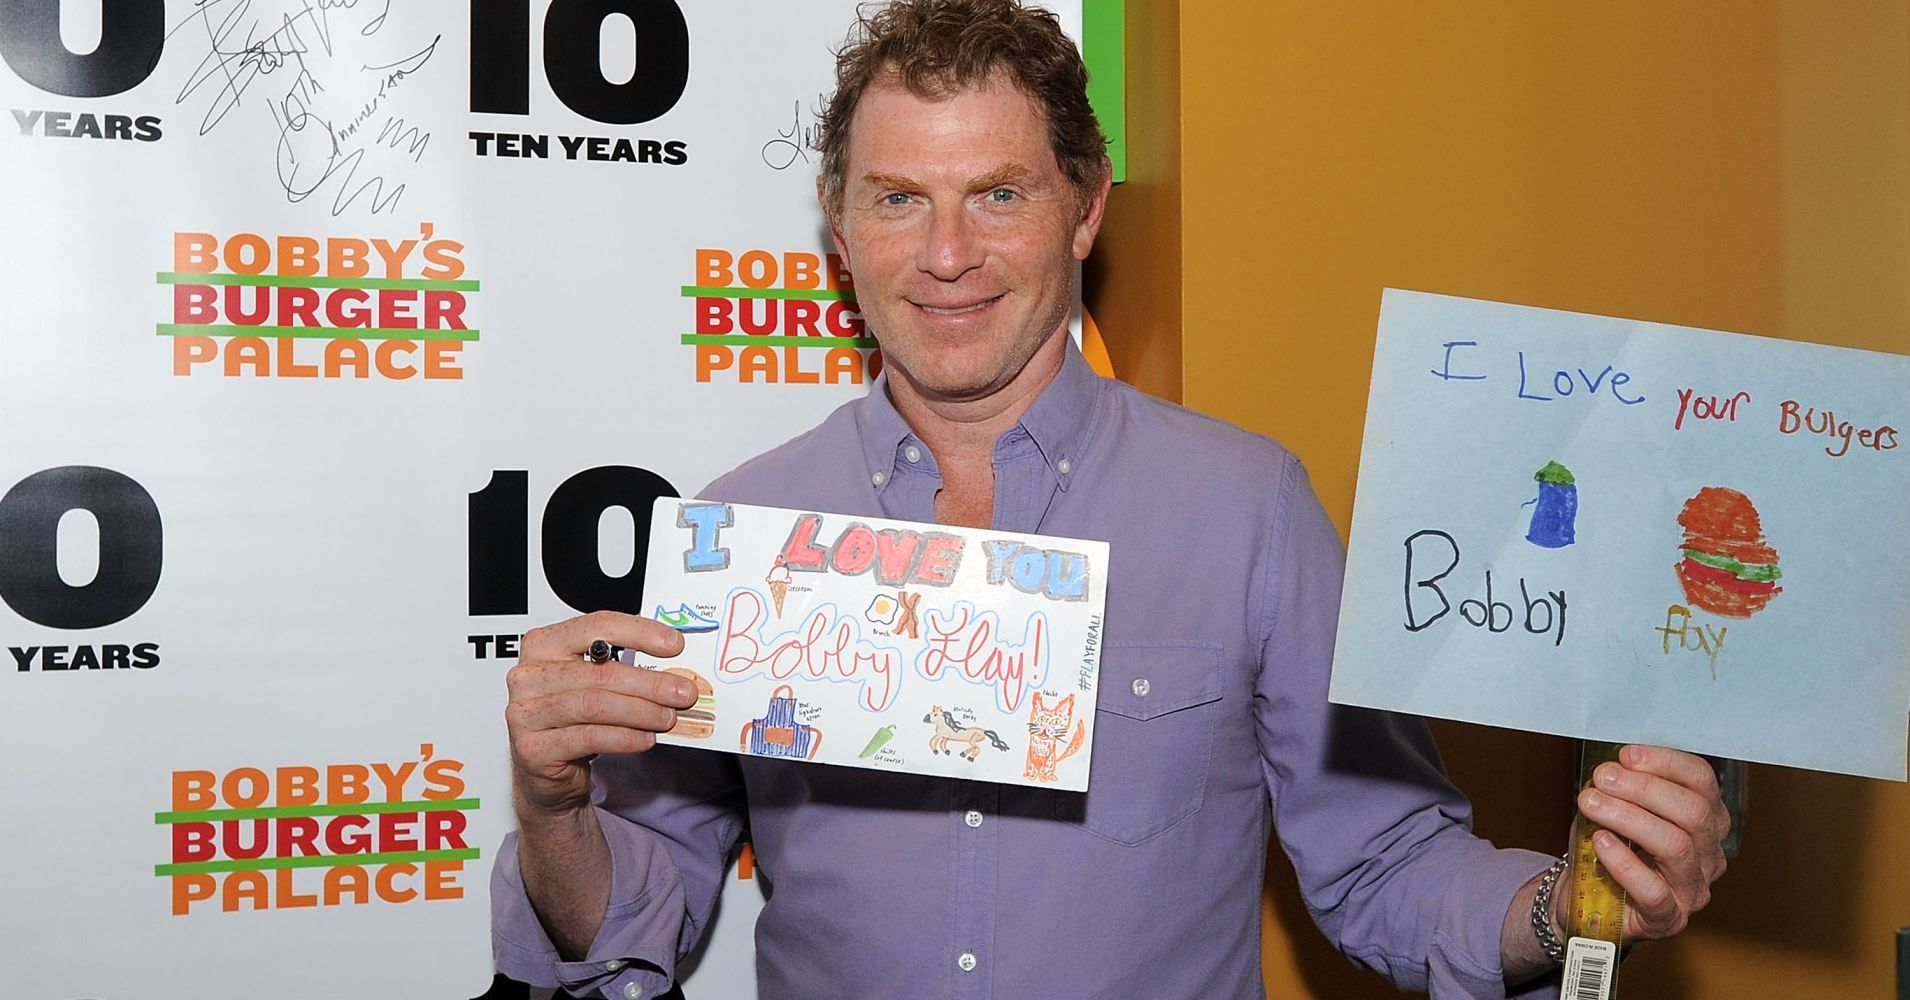 EATONTOWN, NJ - AUGUST 08:  Bobby Flay attends his Bobby's Burger Palace 10 Year Celebration at Bobby's Burger Palace at Monmouth Mall on August 8, 2018 in Eatontown, New Jersey.  (Photo by Bobby Bank/Getty Images)